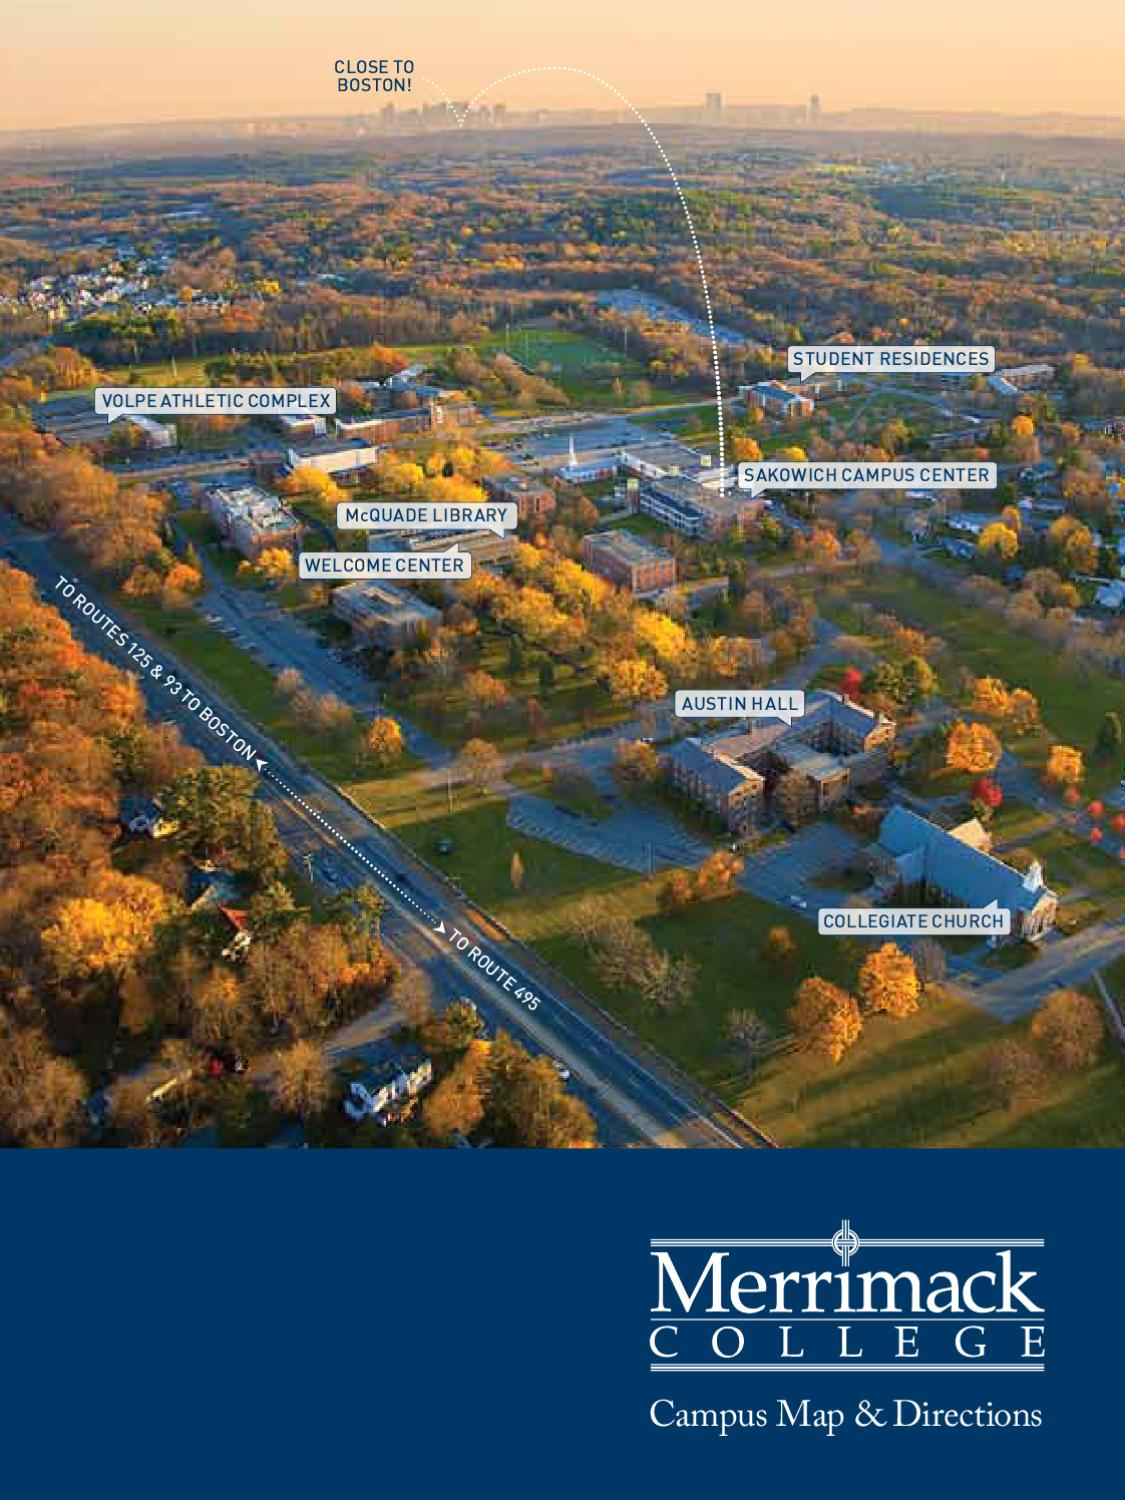 Merrimack College Map by Merrimack College   issuu